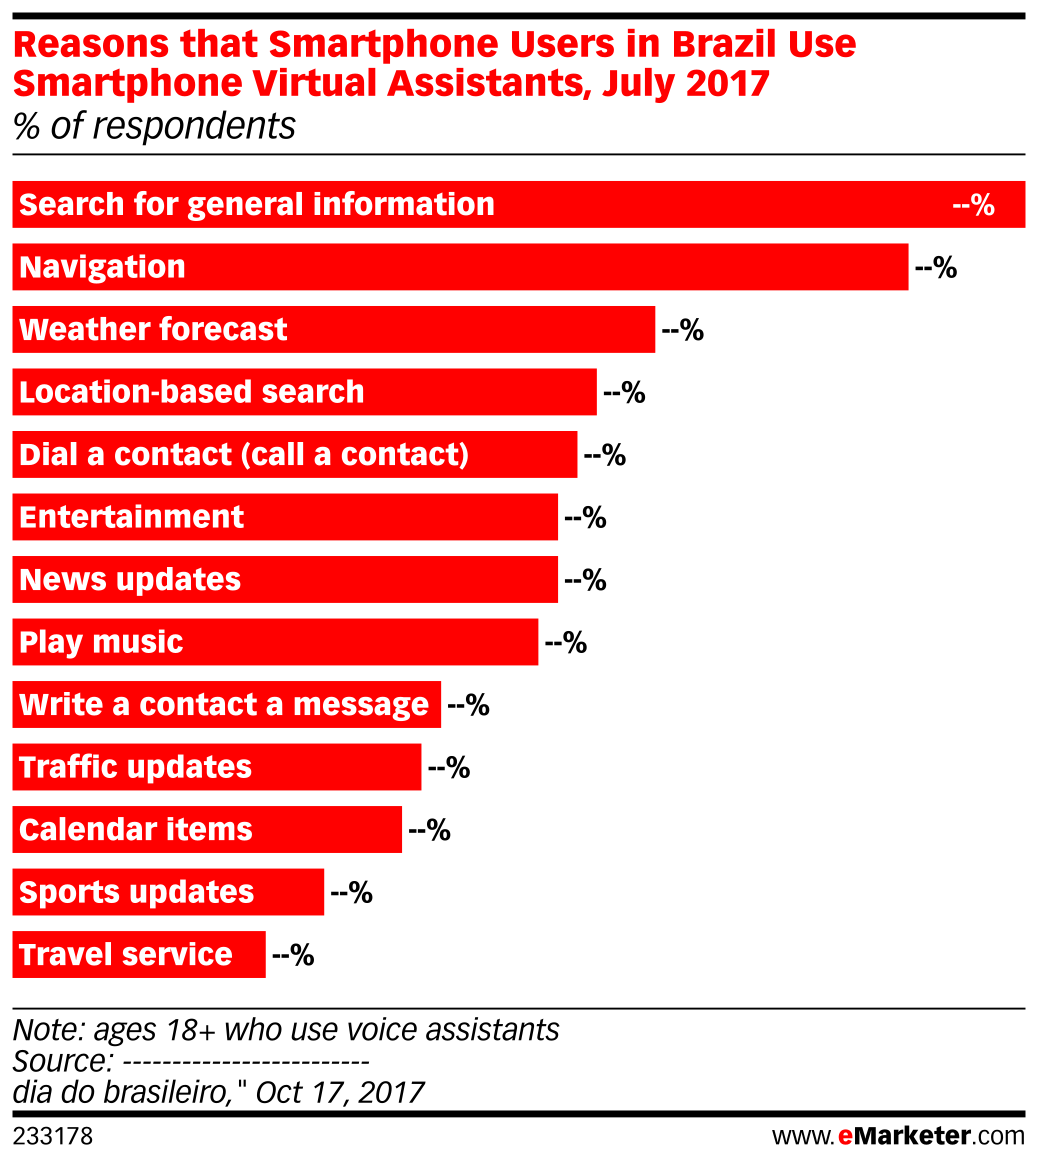 Reasons that Smartphone Users in Brazil Use Smartphone Virtual Assistants, July 2017 (% of respondents)